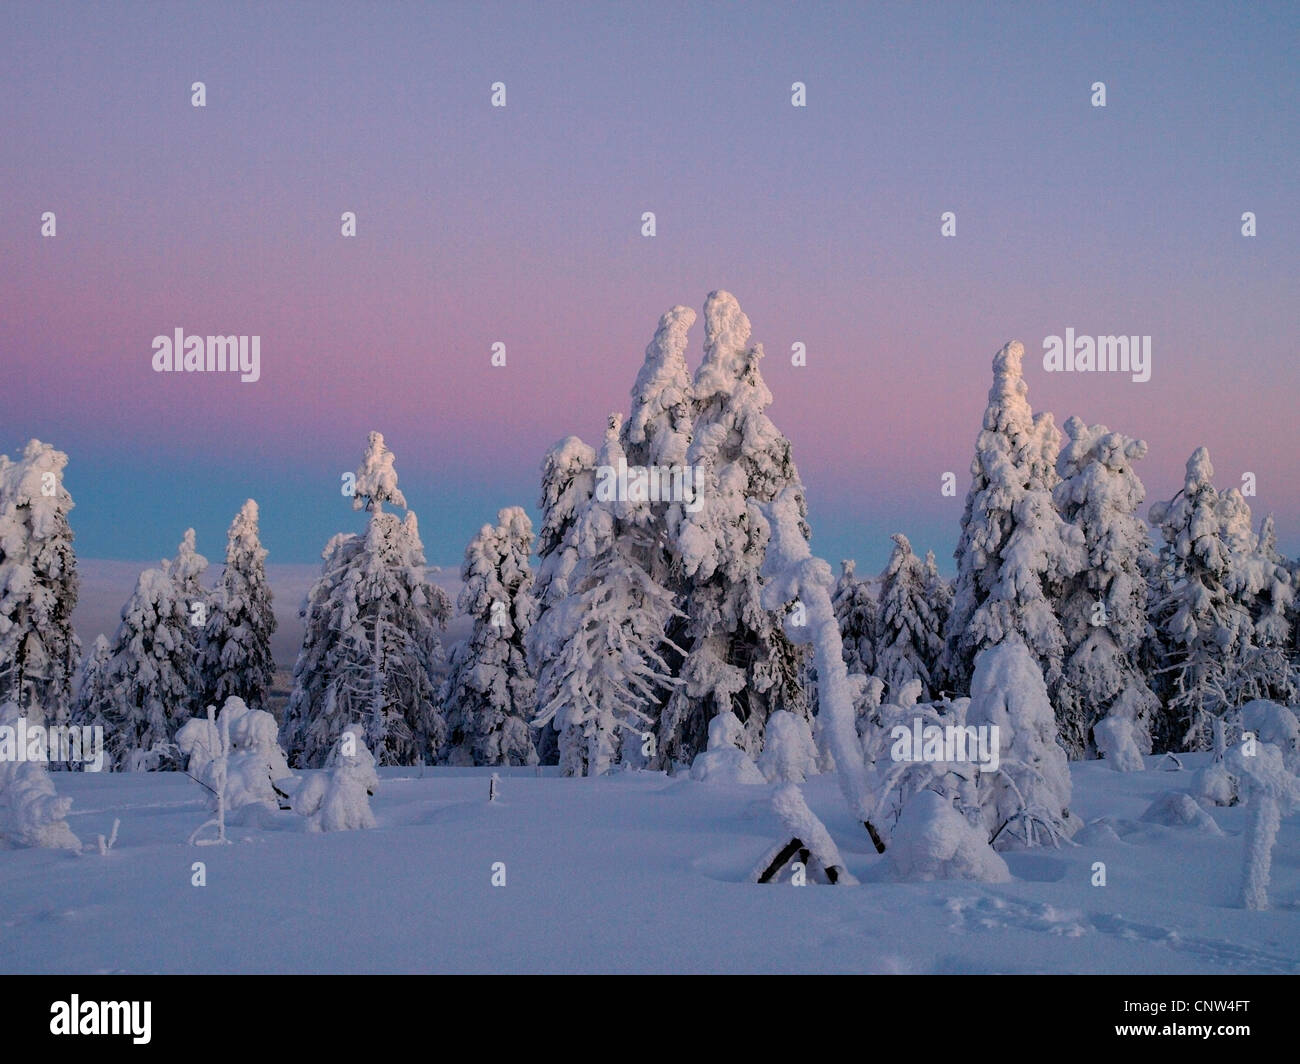 snow-covered light conifer forest in the light of the rising sun, Czech Republic, Erz Mountains, Keilberg - Stock Image